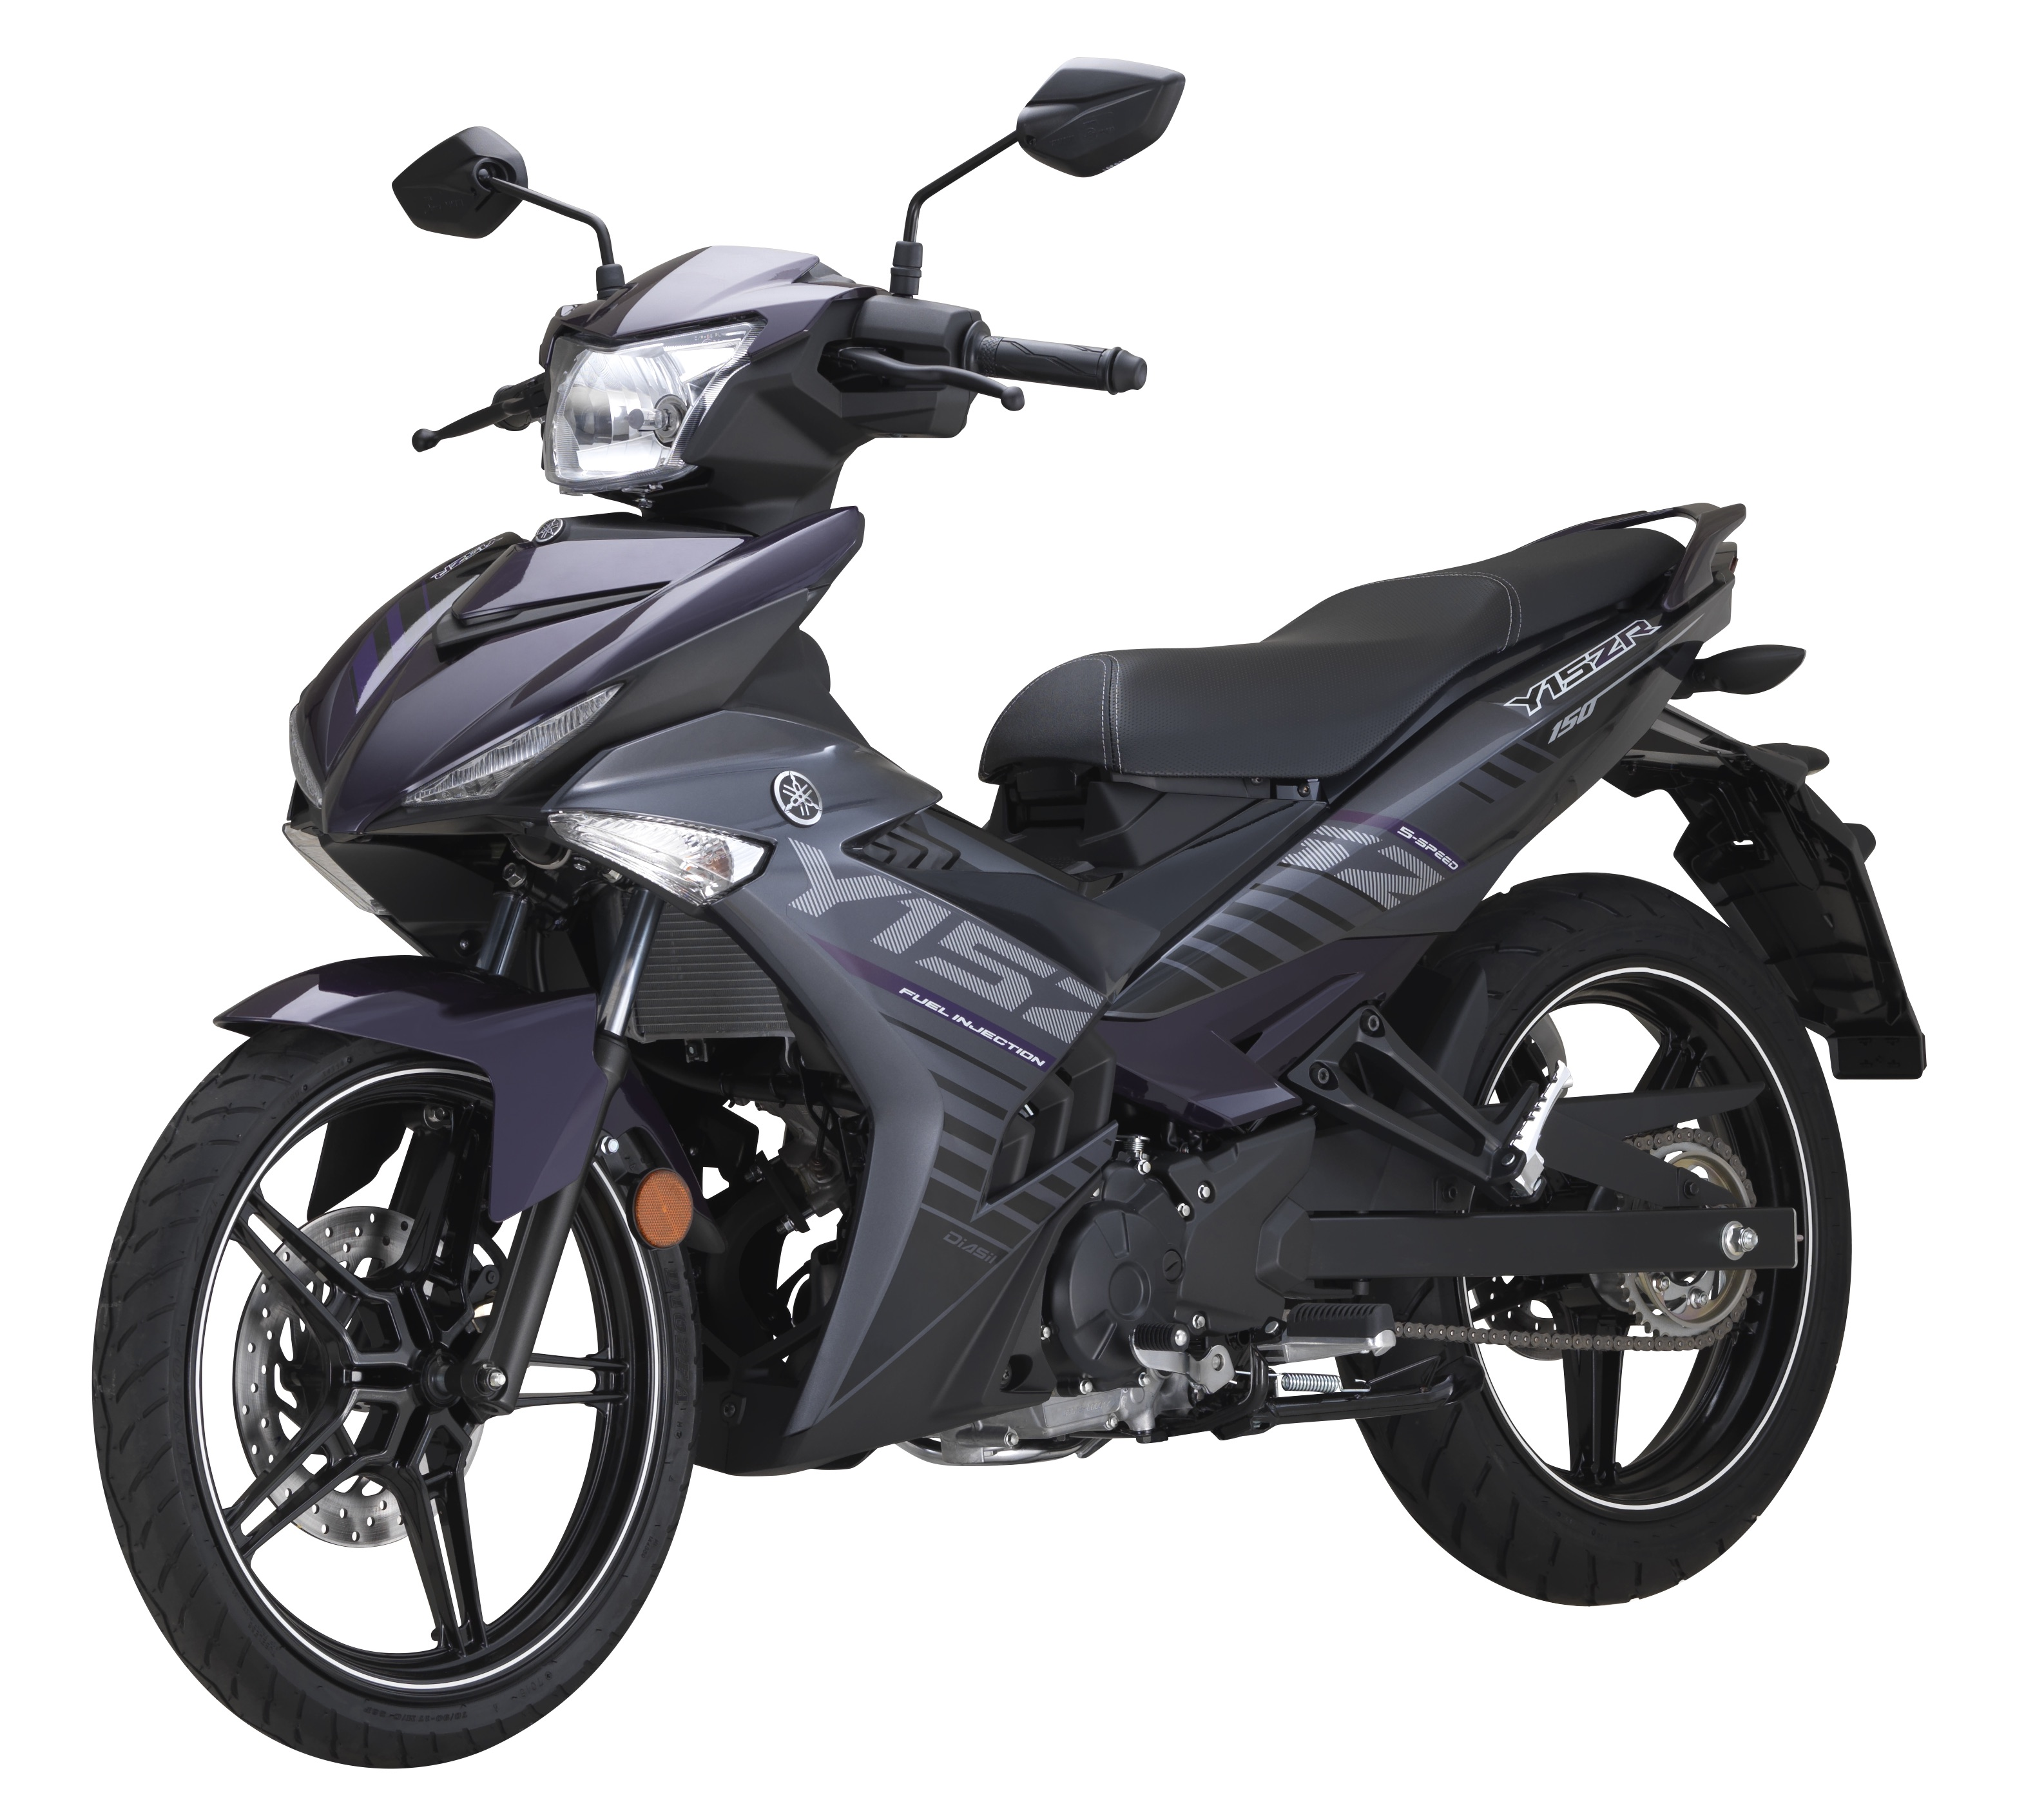 2016 Yamaha Y15ZR Now In Grey Priced At RM8210 Image